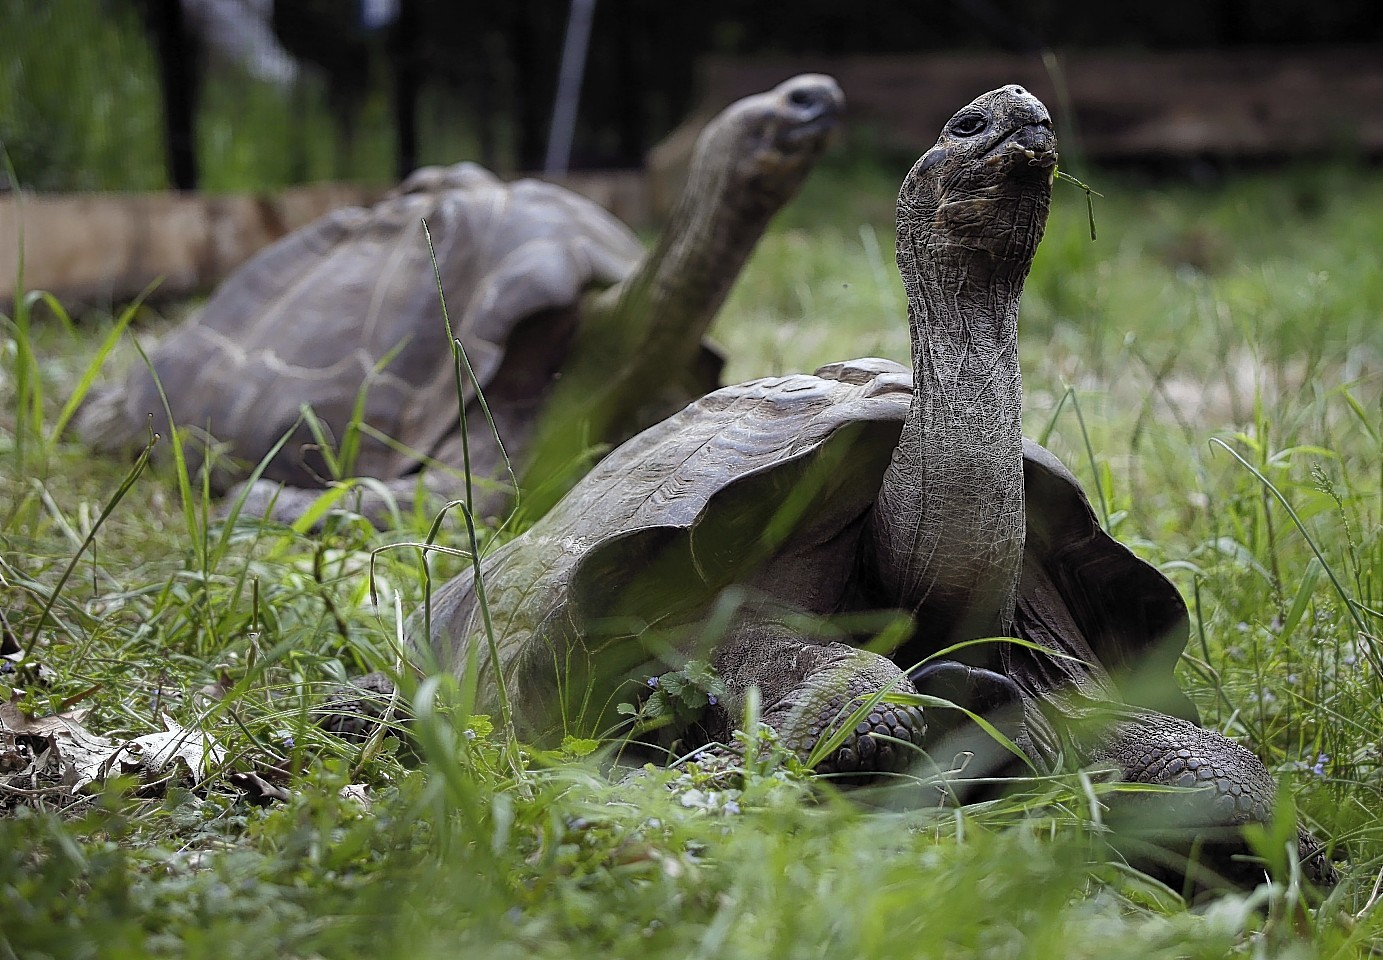 A pair of 20-year-old Galápagos tortoises raise their heads as they wander through their new home at The Pittsburgh Zoo & PPG Aquarium on Thursday